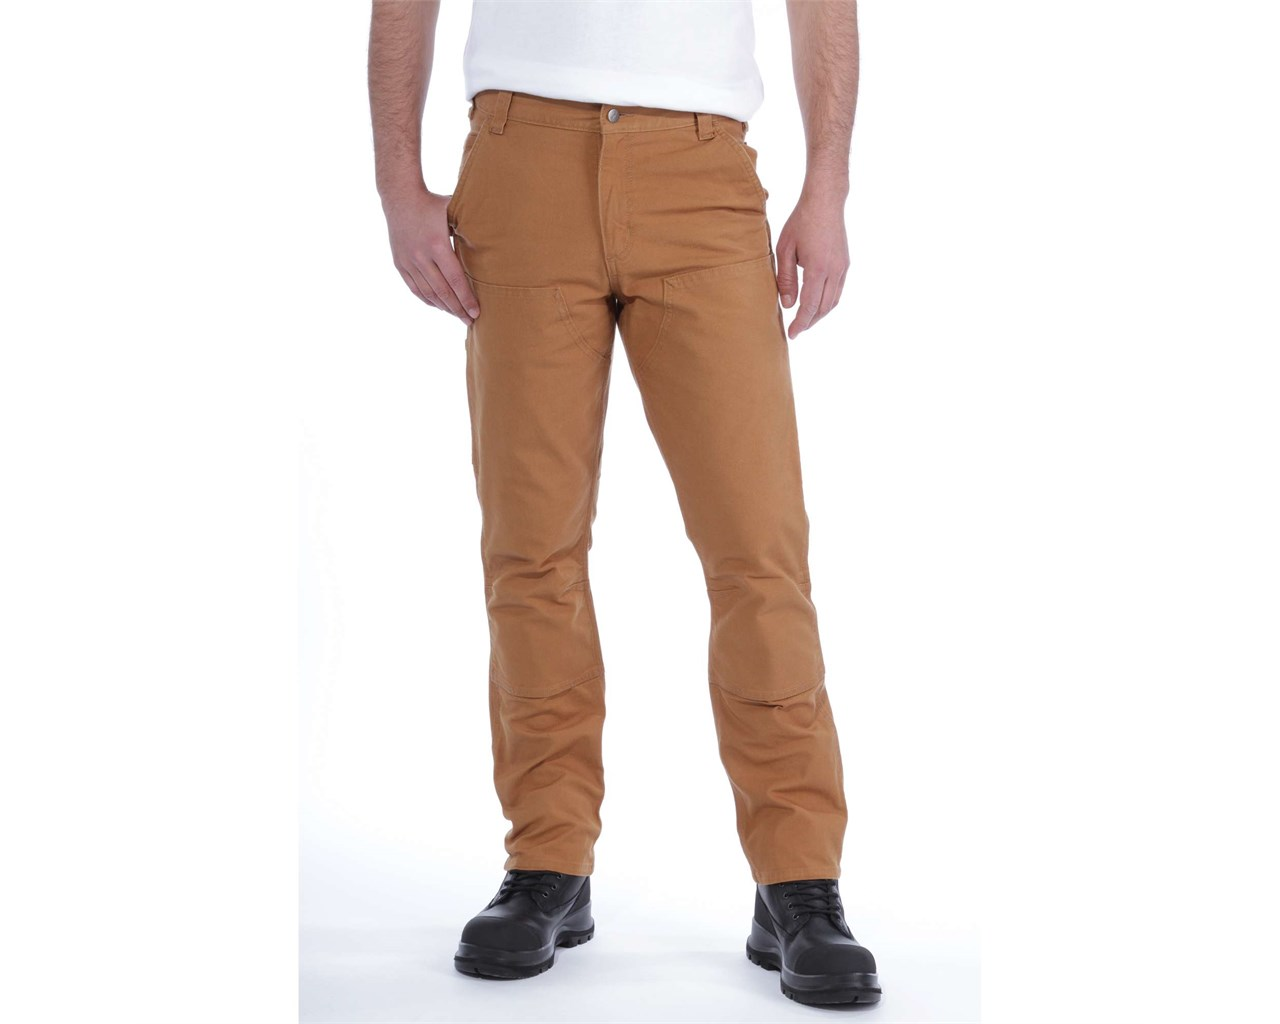 Carhartt Stretch Duck Double Front Trousers, Carhartt Brown, W30/L32